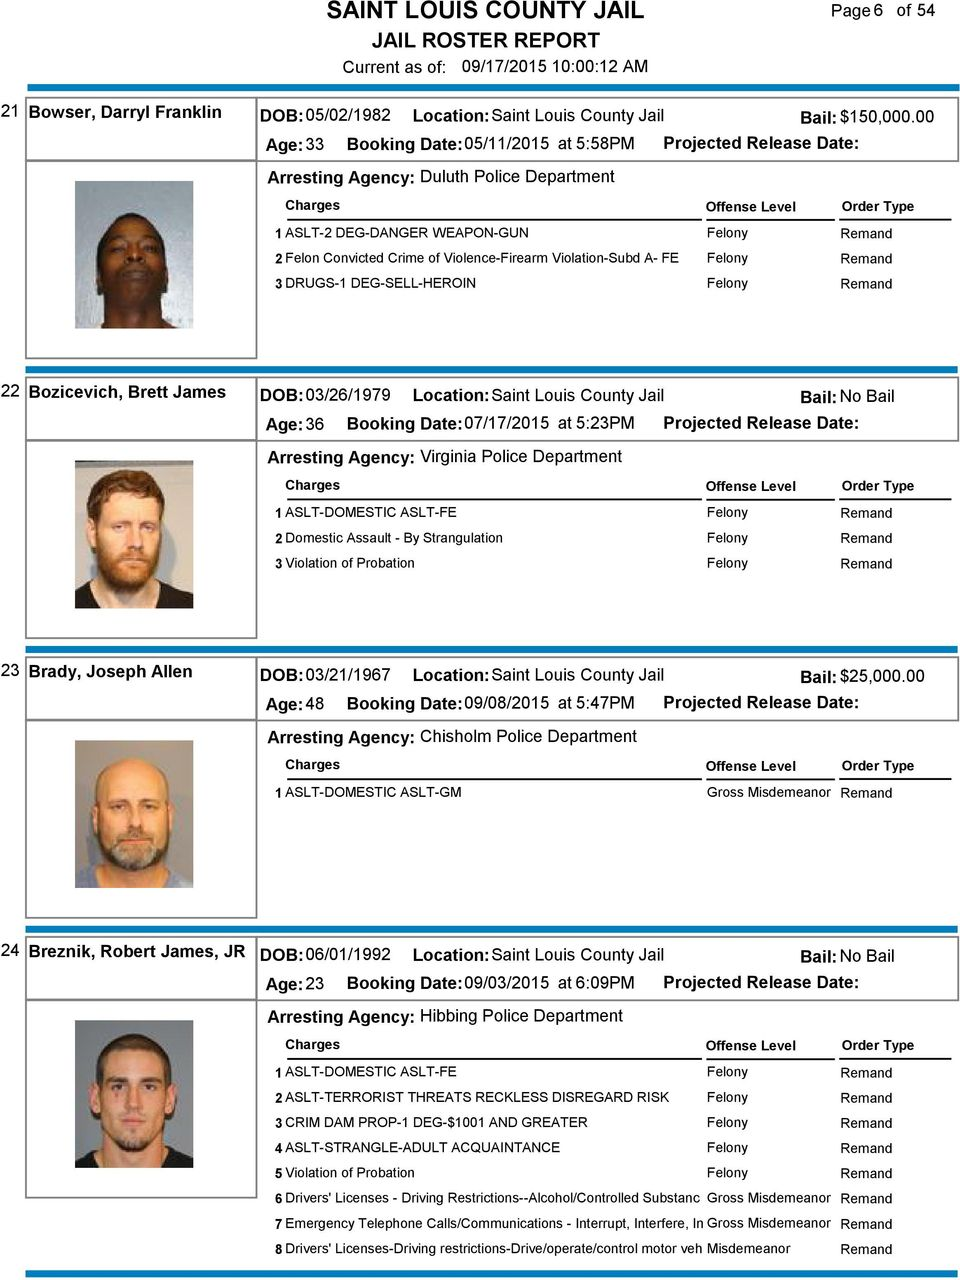 Nd jail roster